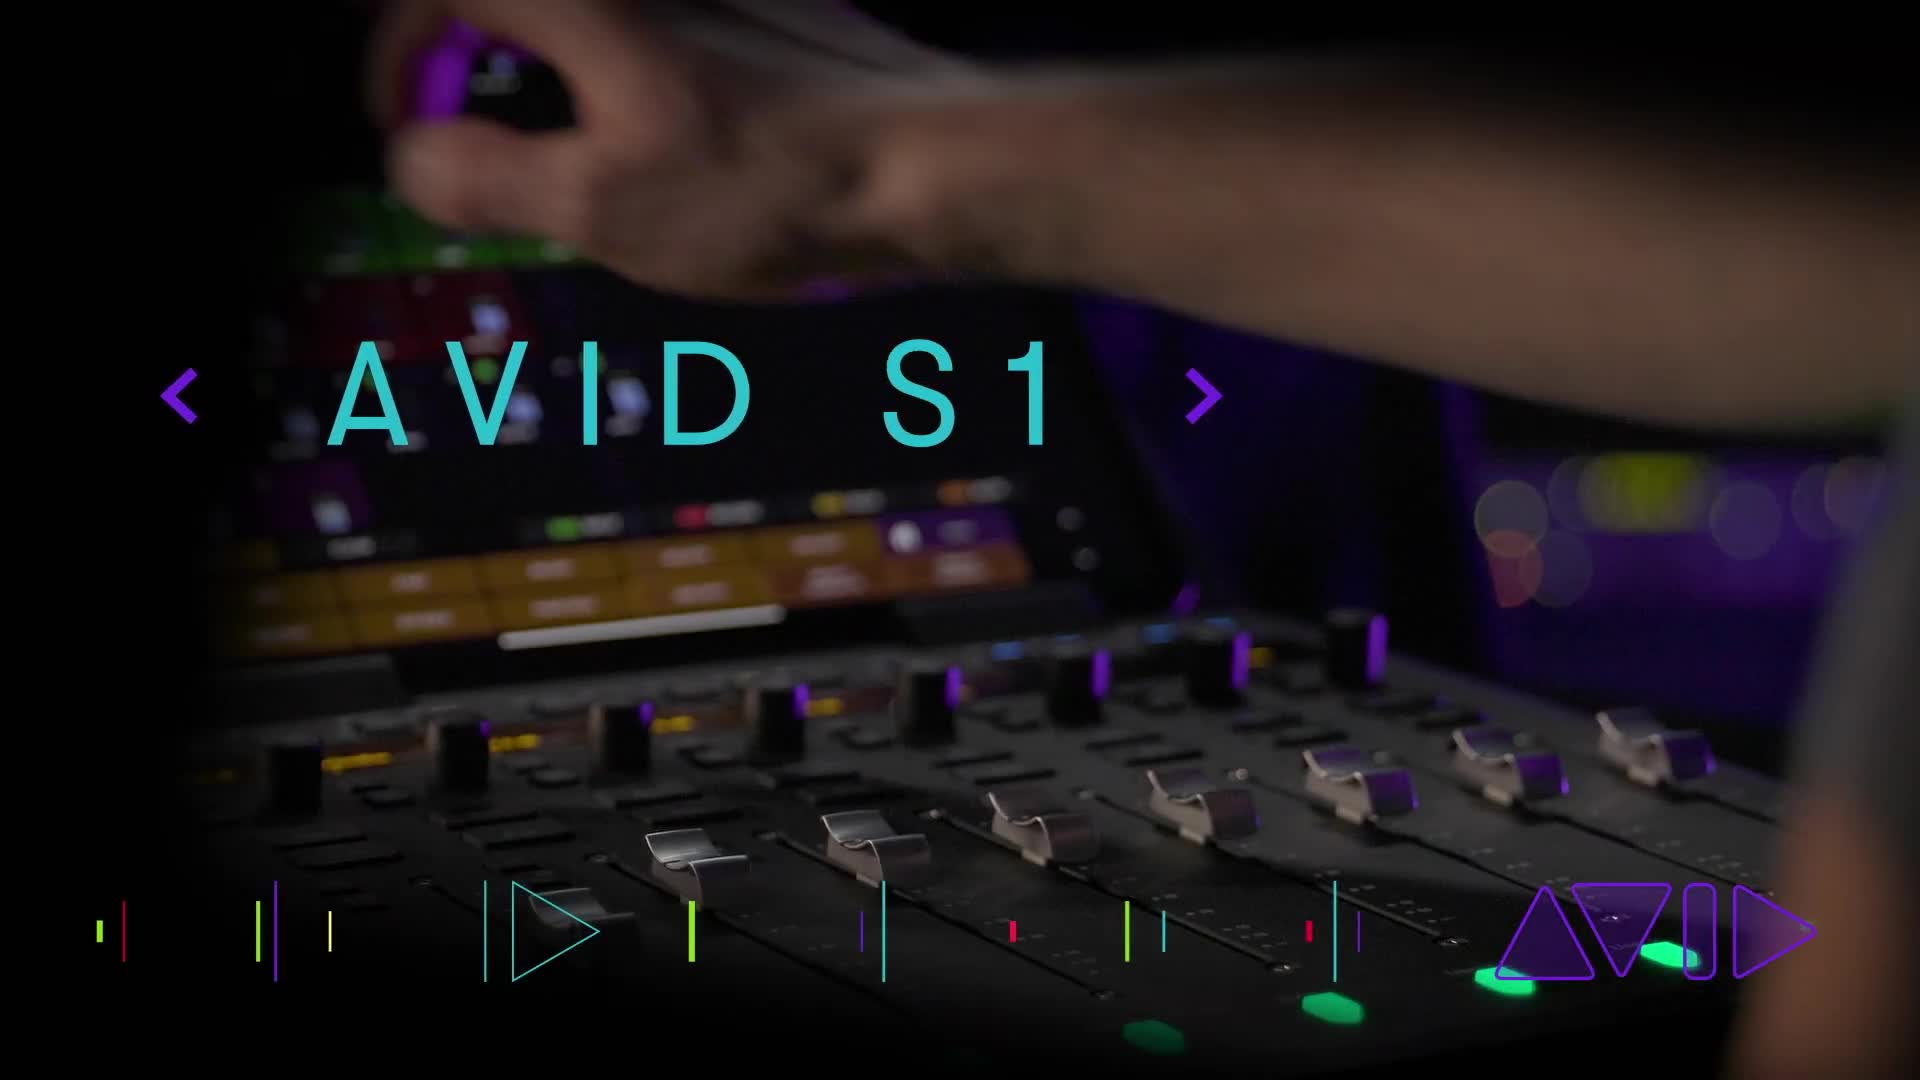 Introducing Avid S1